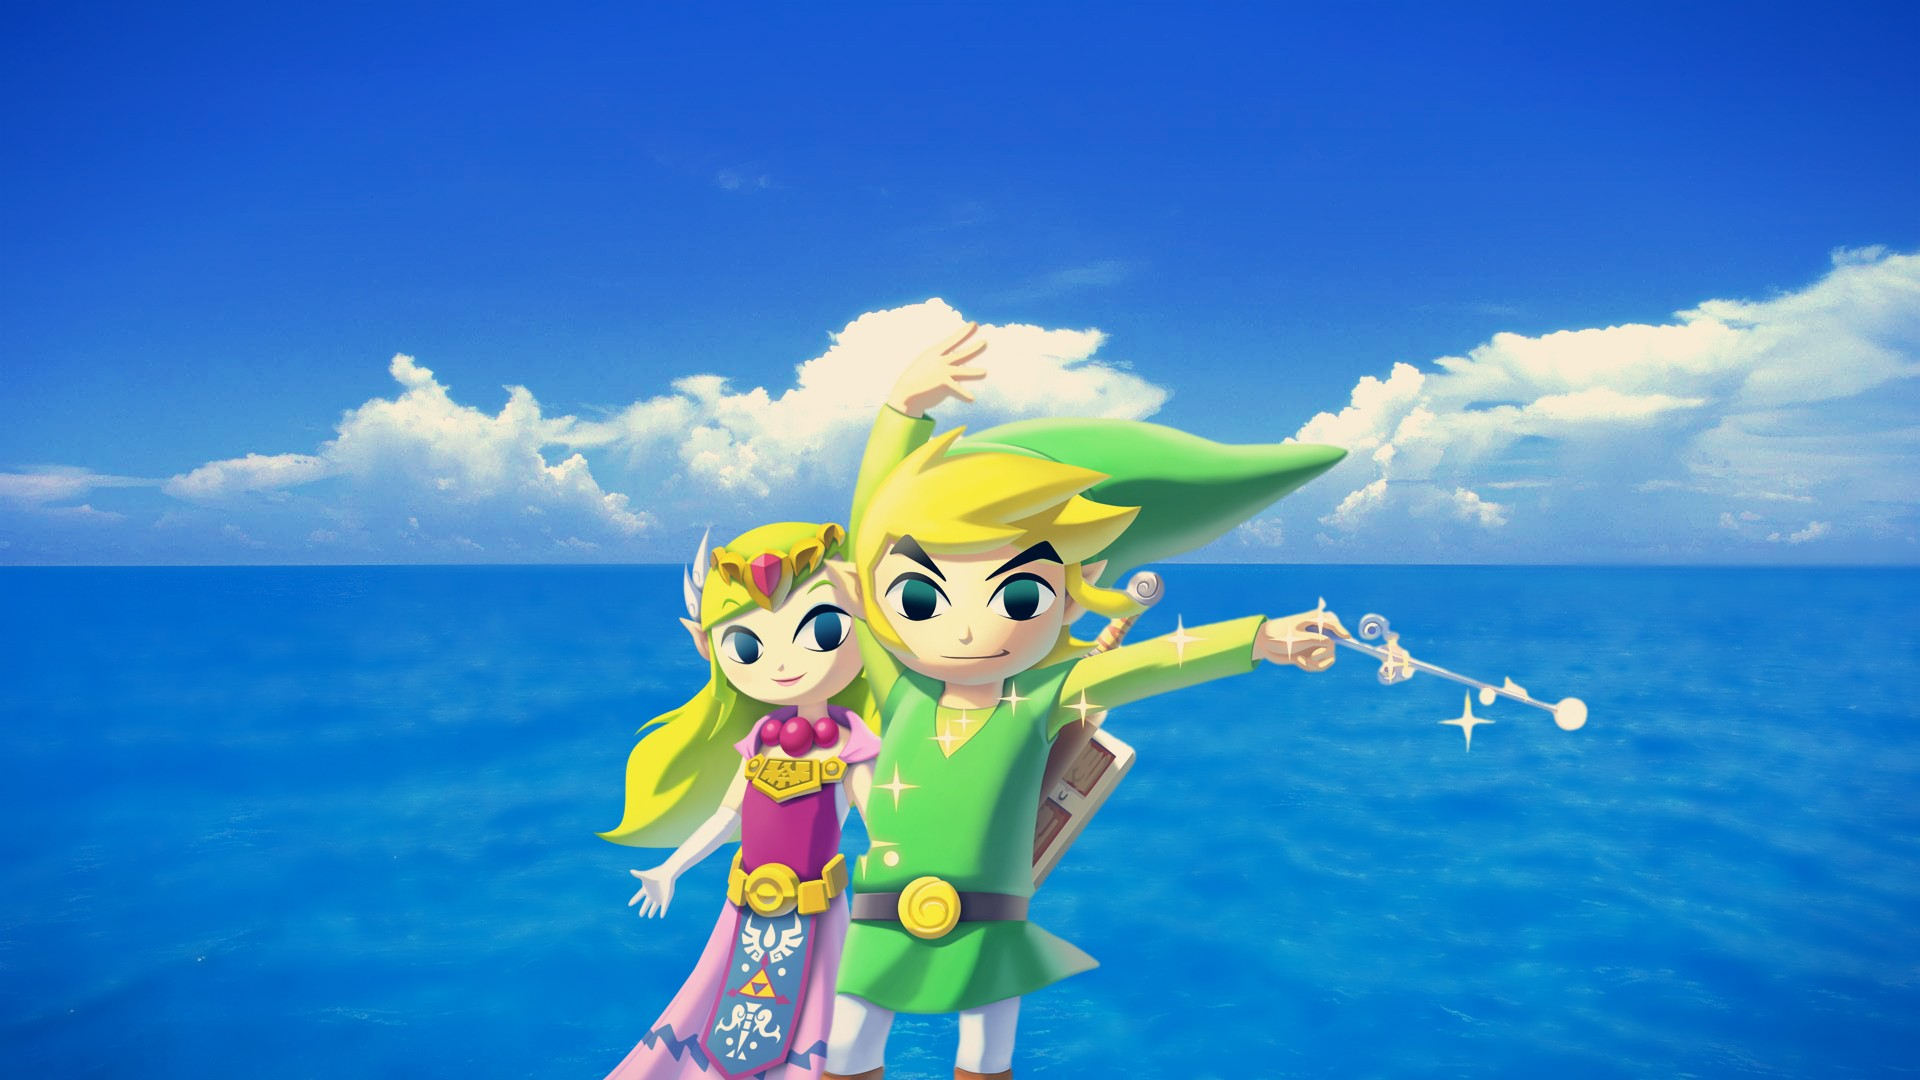 Wind Waker Wallpaper Download Free Stunning Backgrounds For